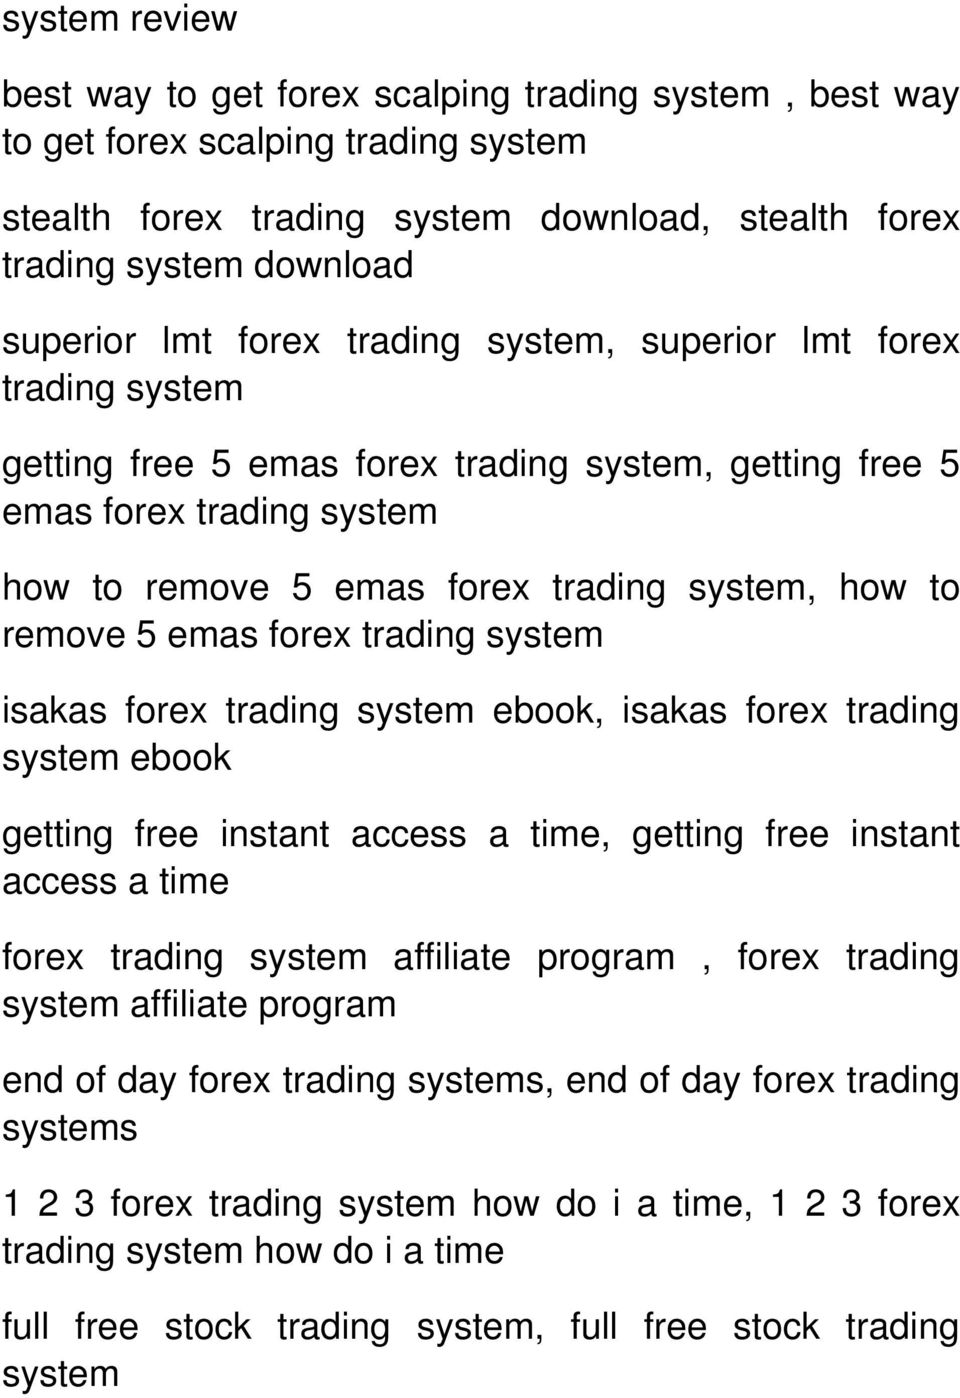 system ebook getting free instant access a time, getting free instant access a time affiliate program, forex trading system affiliate